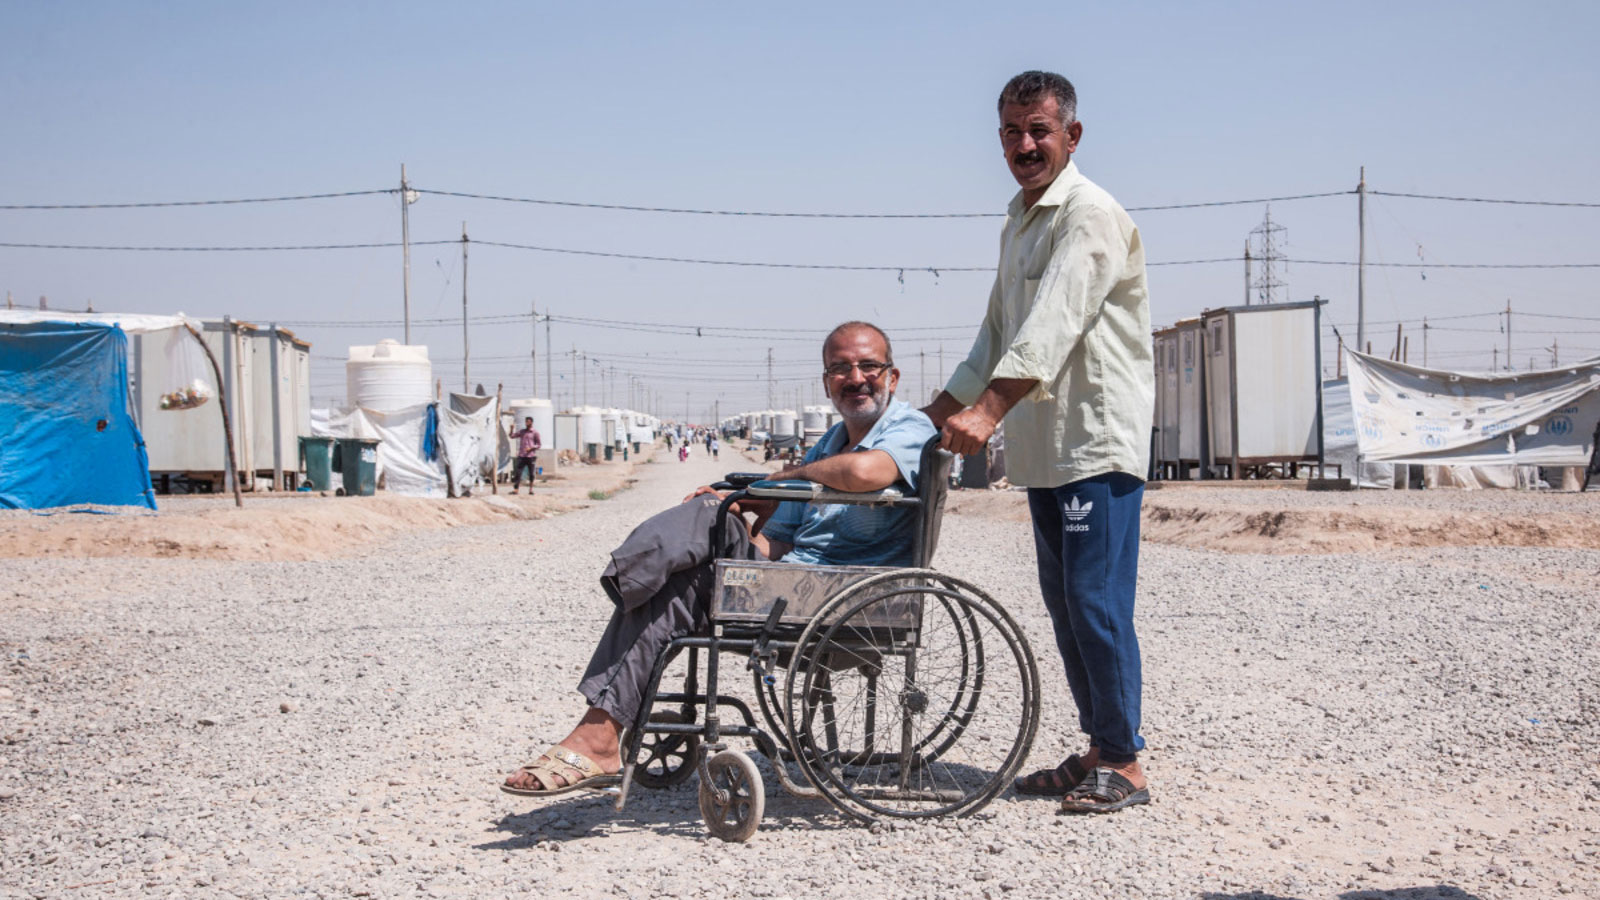 UN Security Council adopts resolution to protect people with disabilities